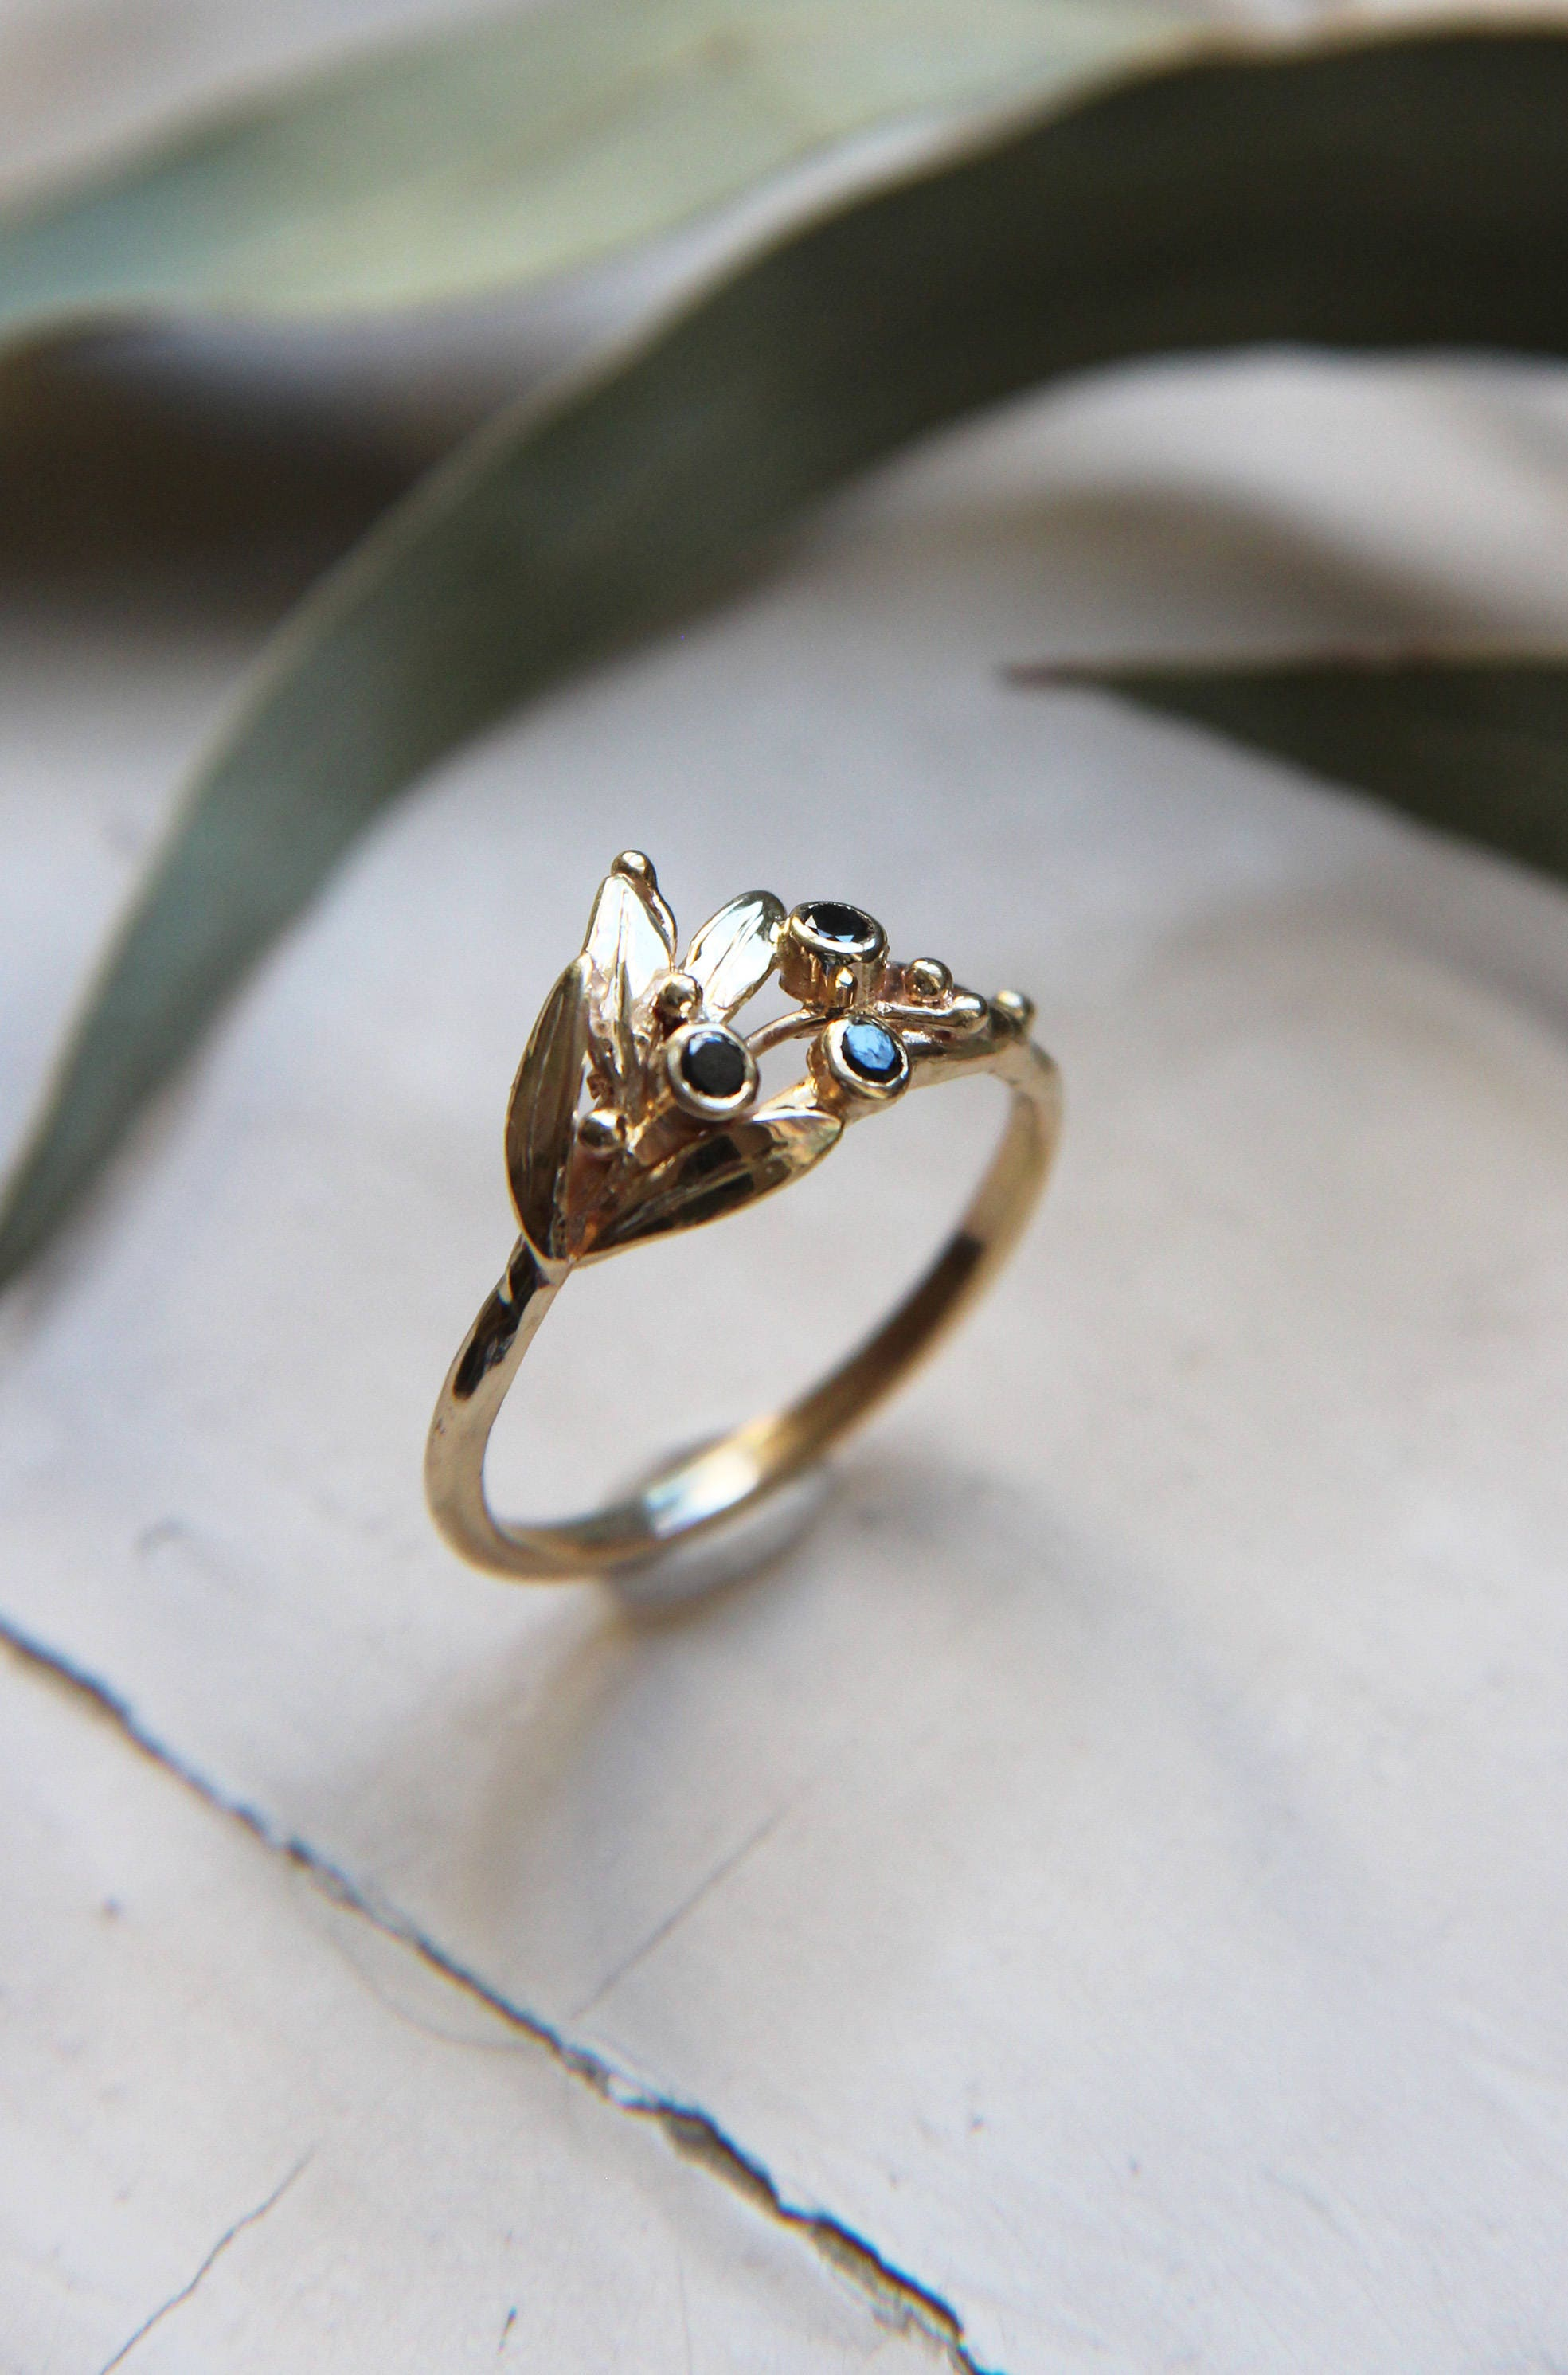 fingers com ring the finger and symbolism leaf meaning of wedding hidden rings theknot via